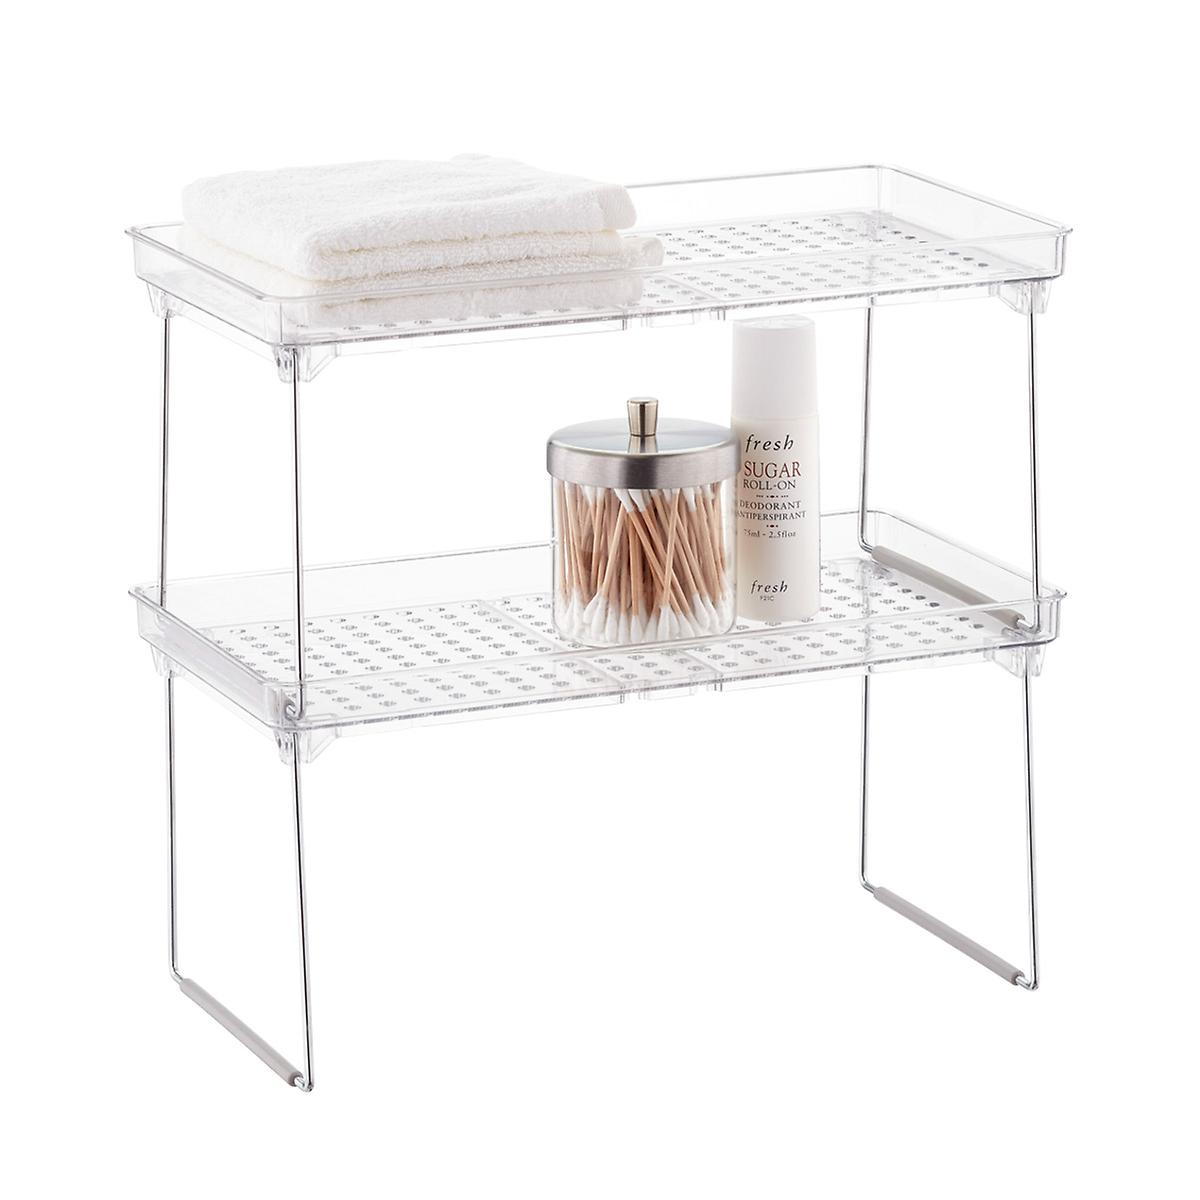 Stackable Cabinet Shelving $10